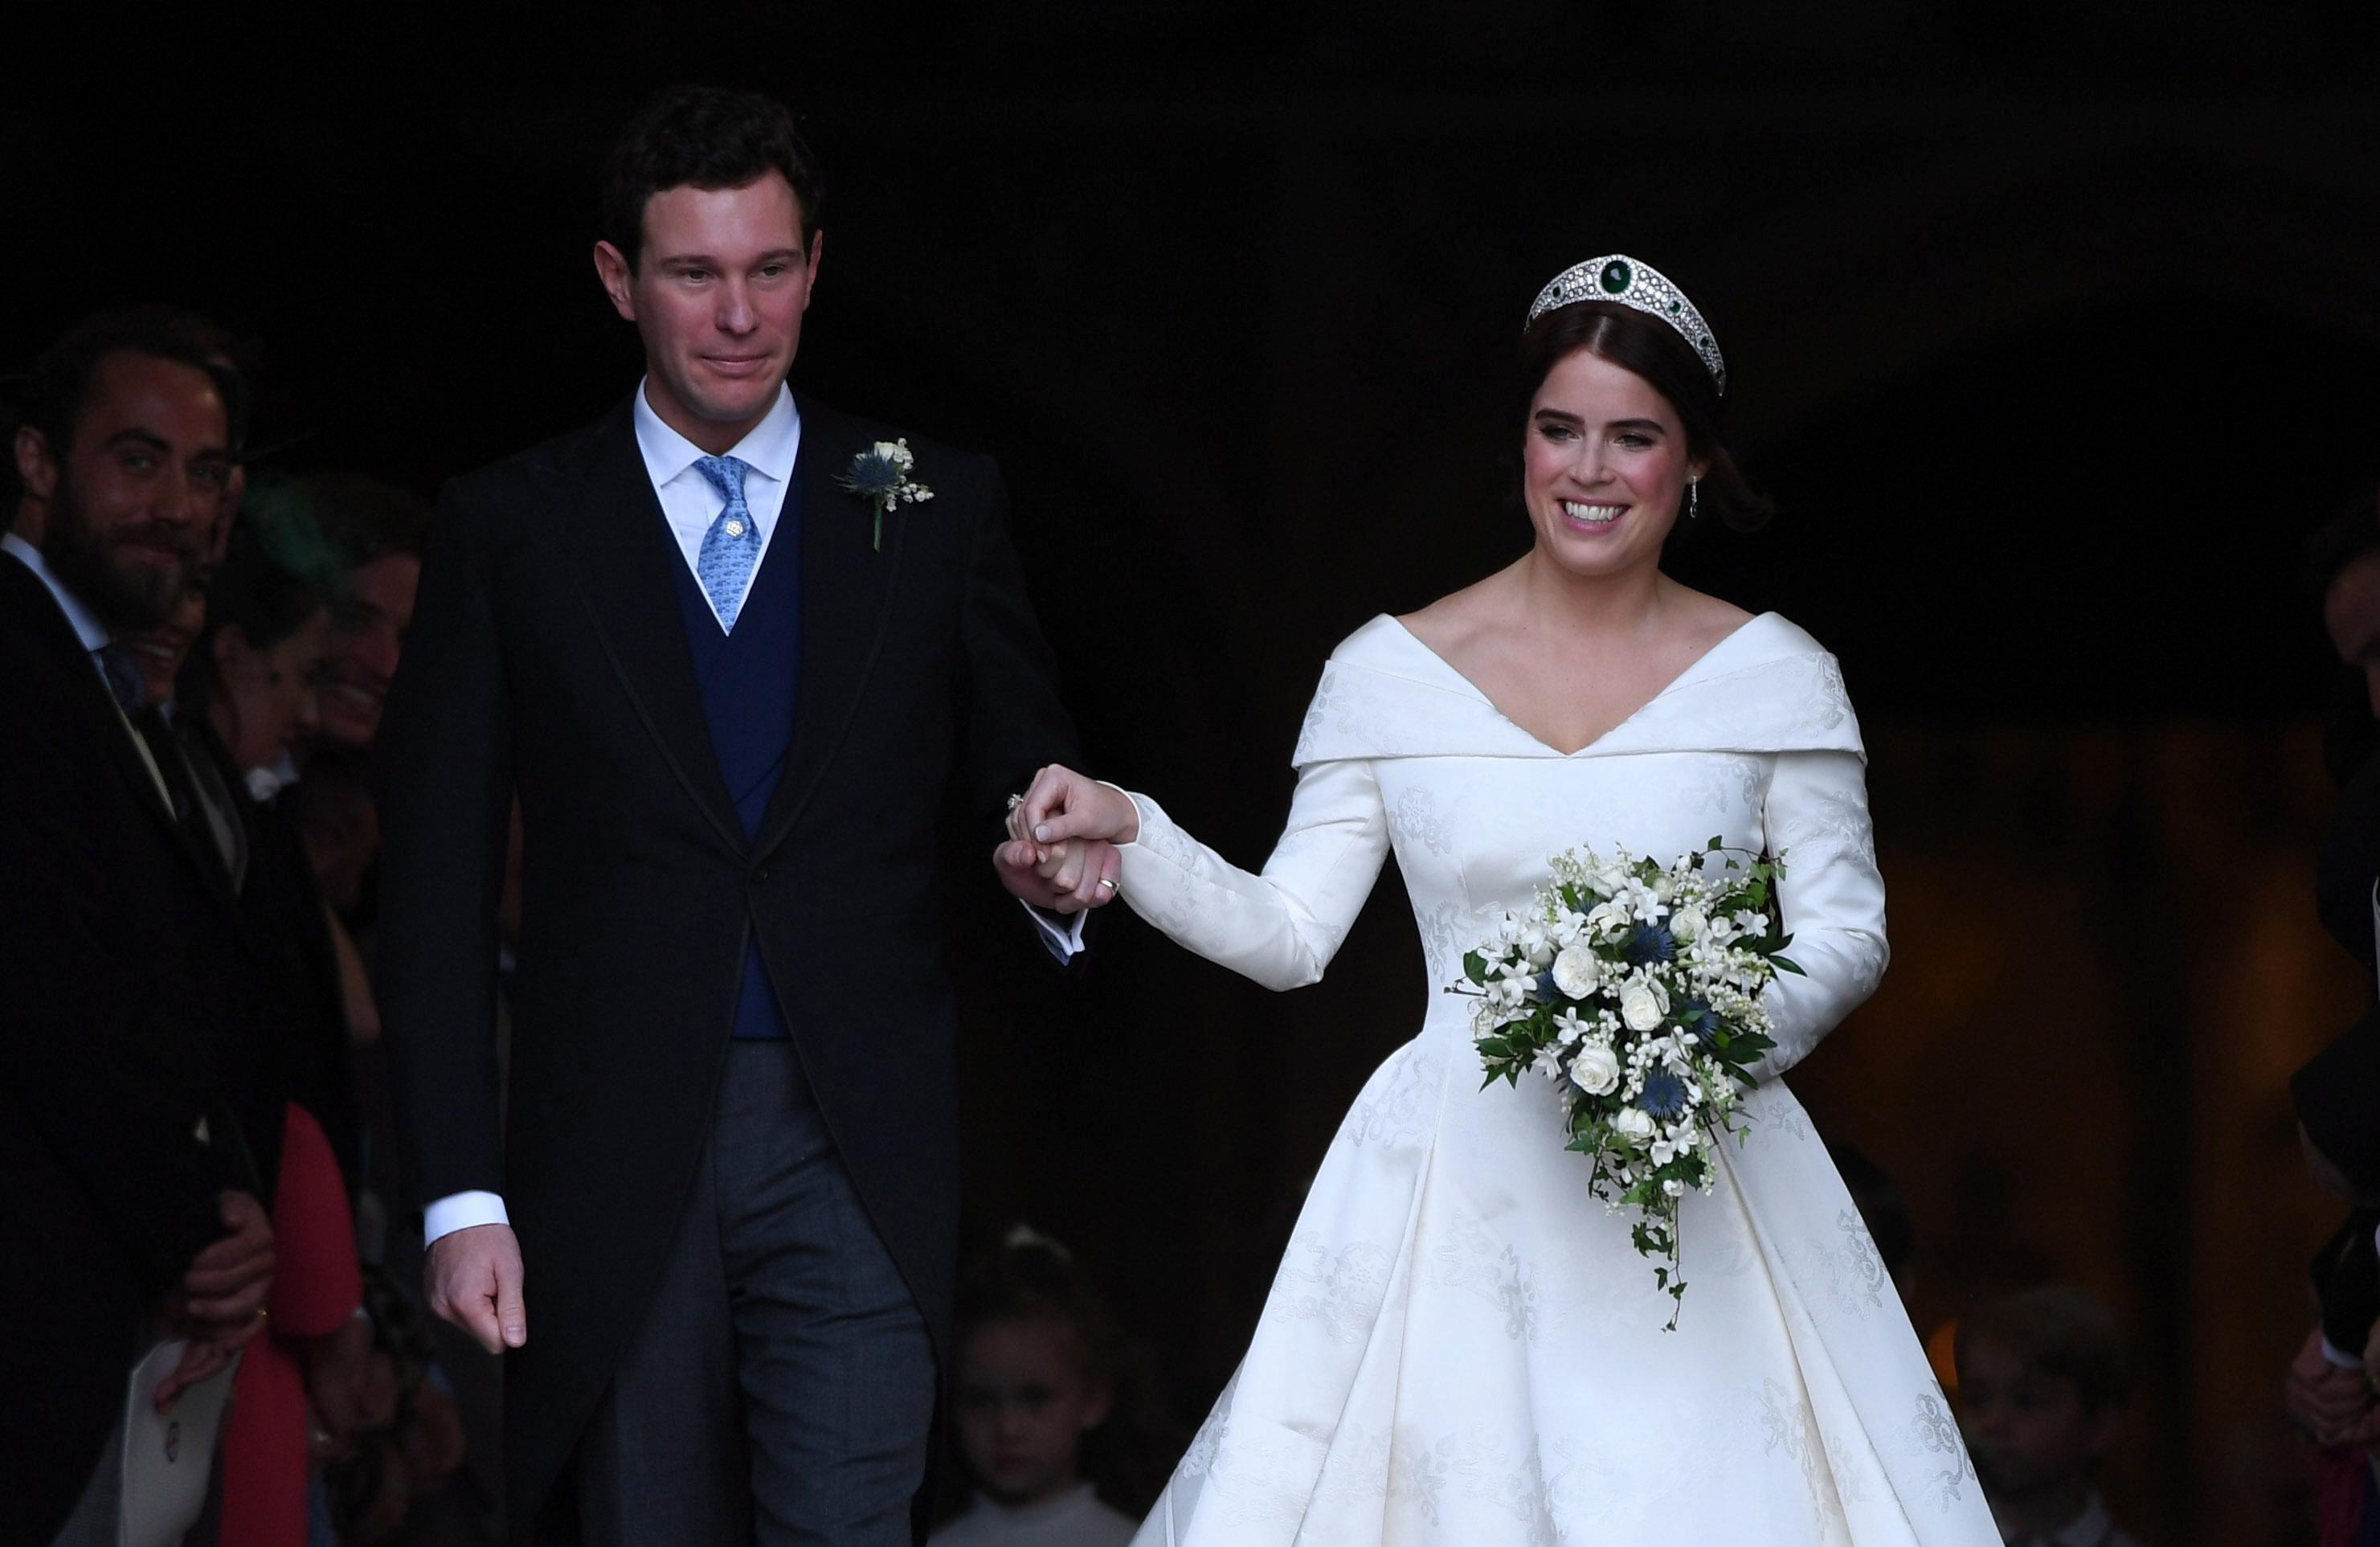 Eugenie di York sposa Jack Brooksbank: il matrimonio al Castello di Windsor